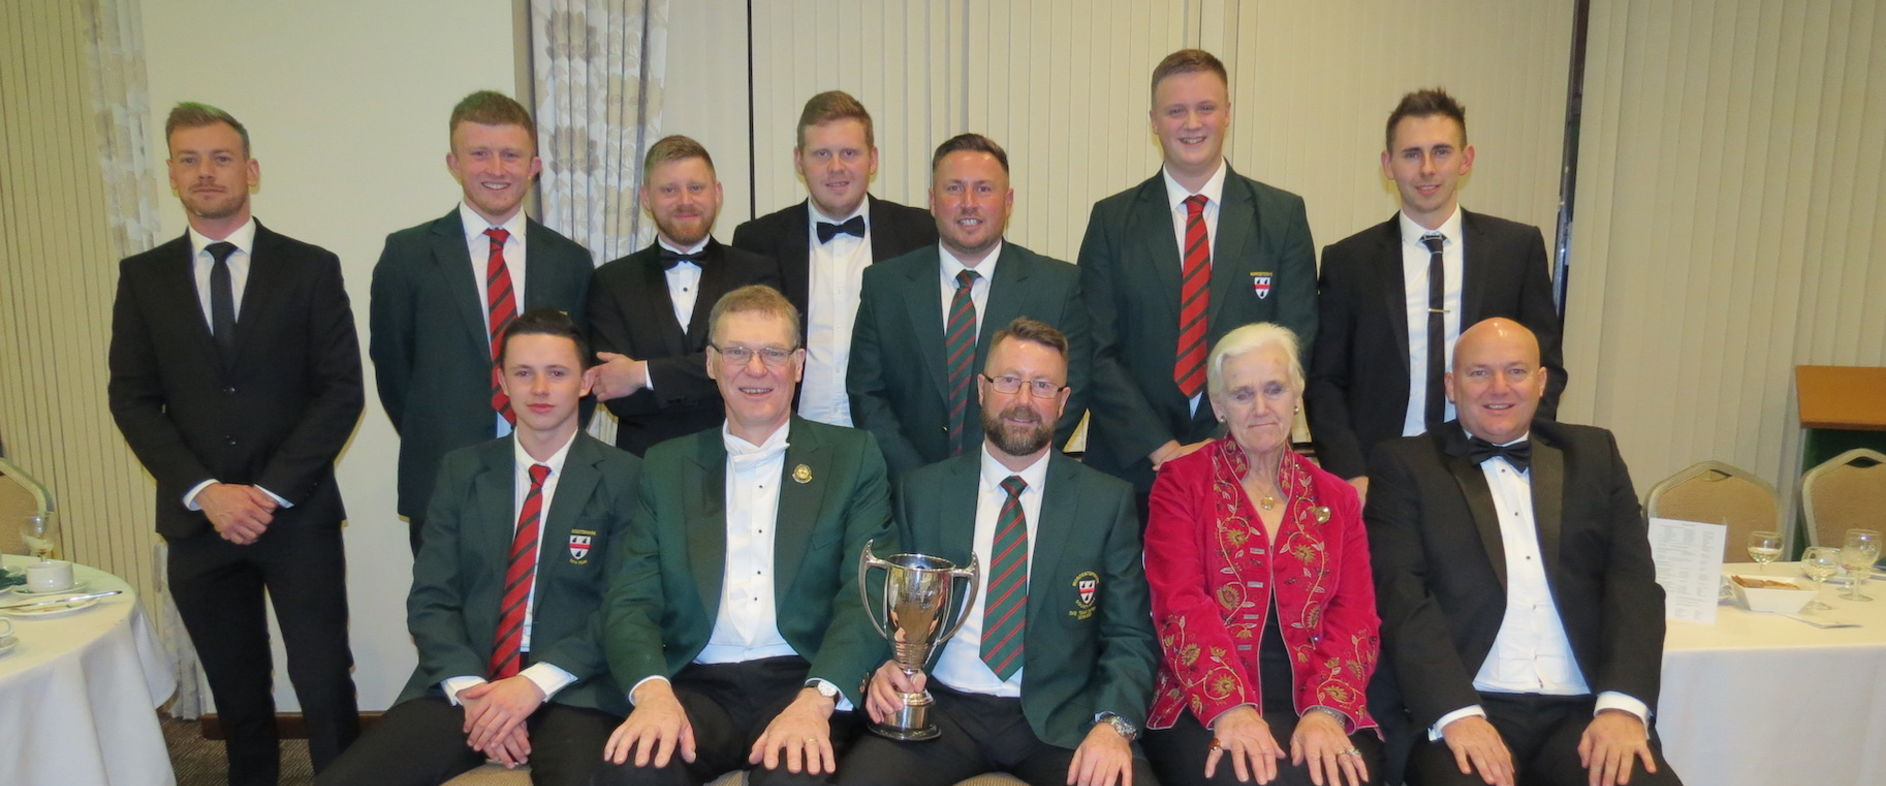 WM League Champions, The County 2nd Team, celebrate their victory at the County Dinner 17.1.20